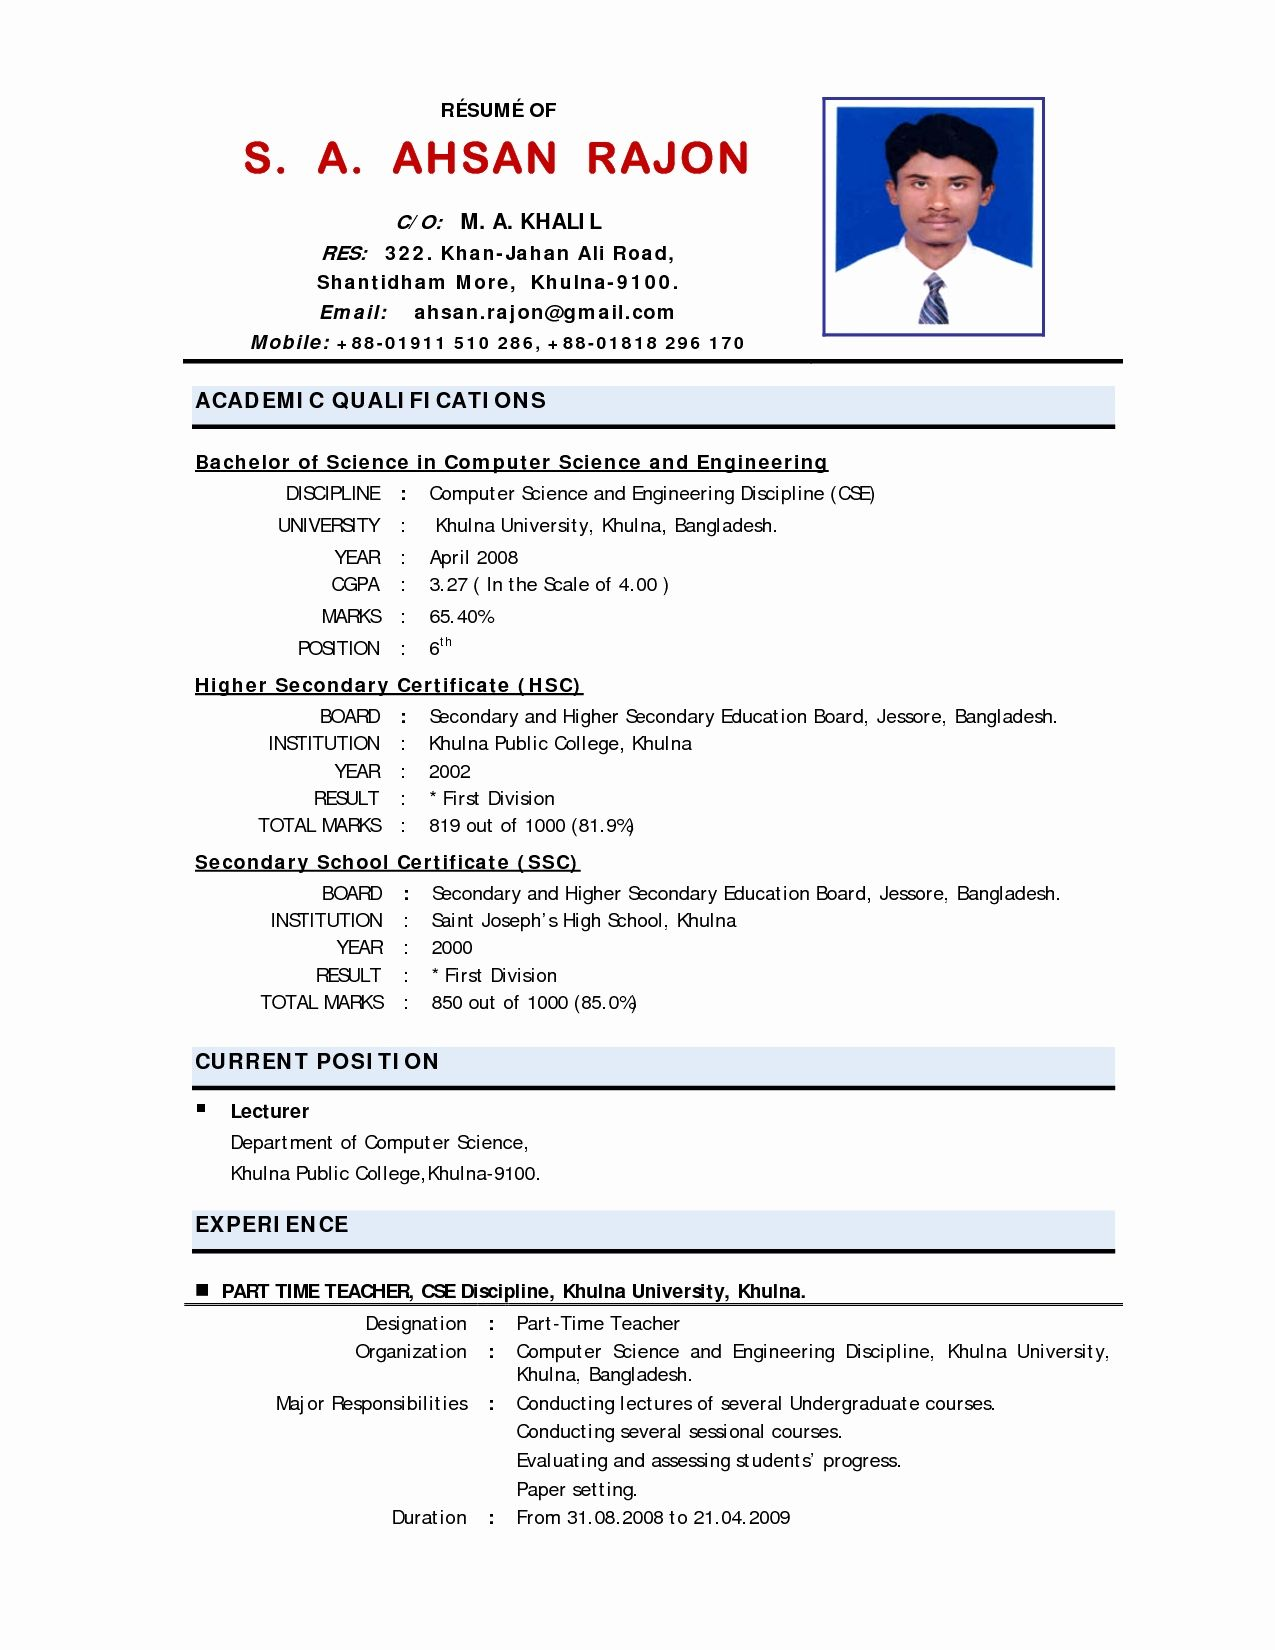 Resume Format India Resume format download, Best resume